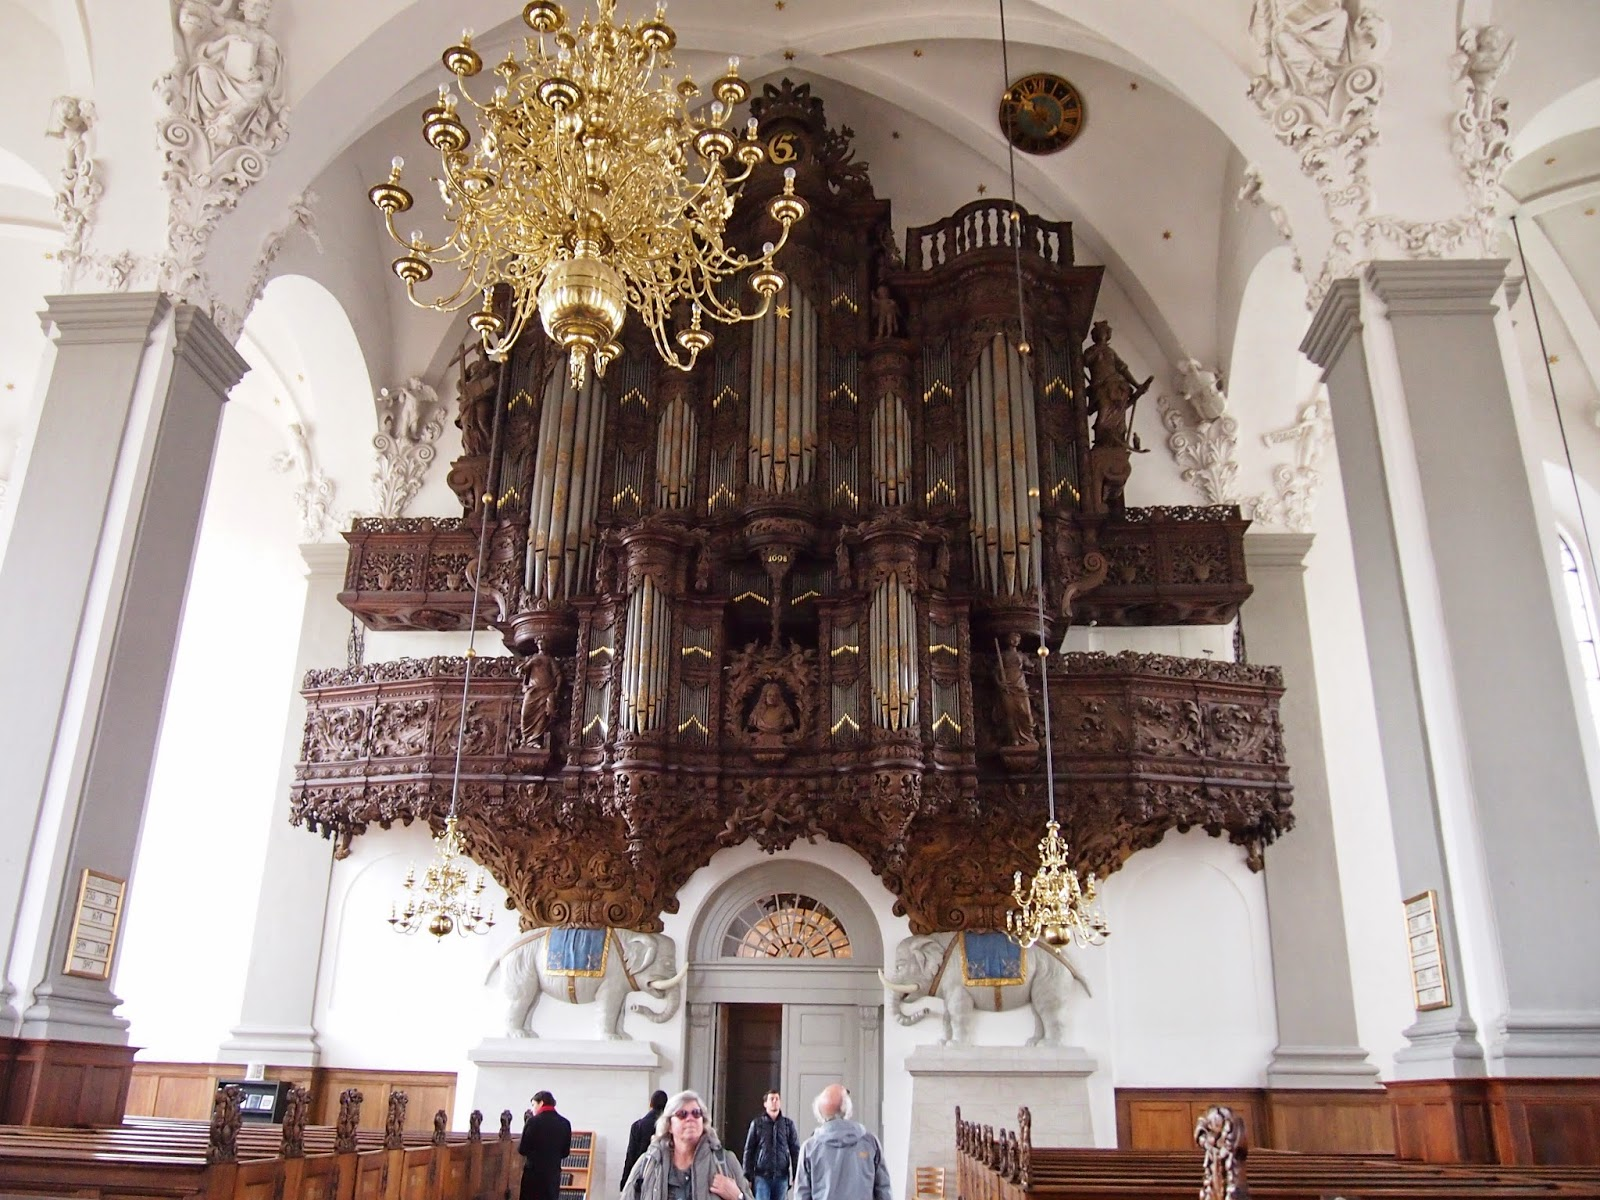 intricate organ in the our saviors church in copenhagen